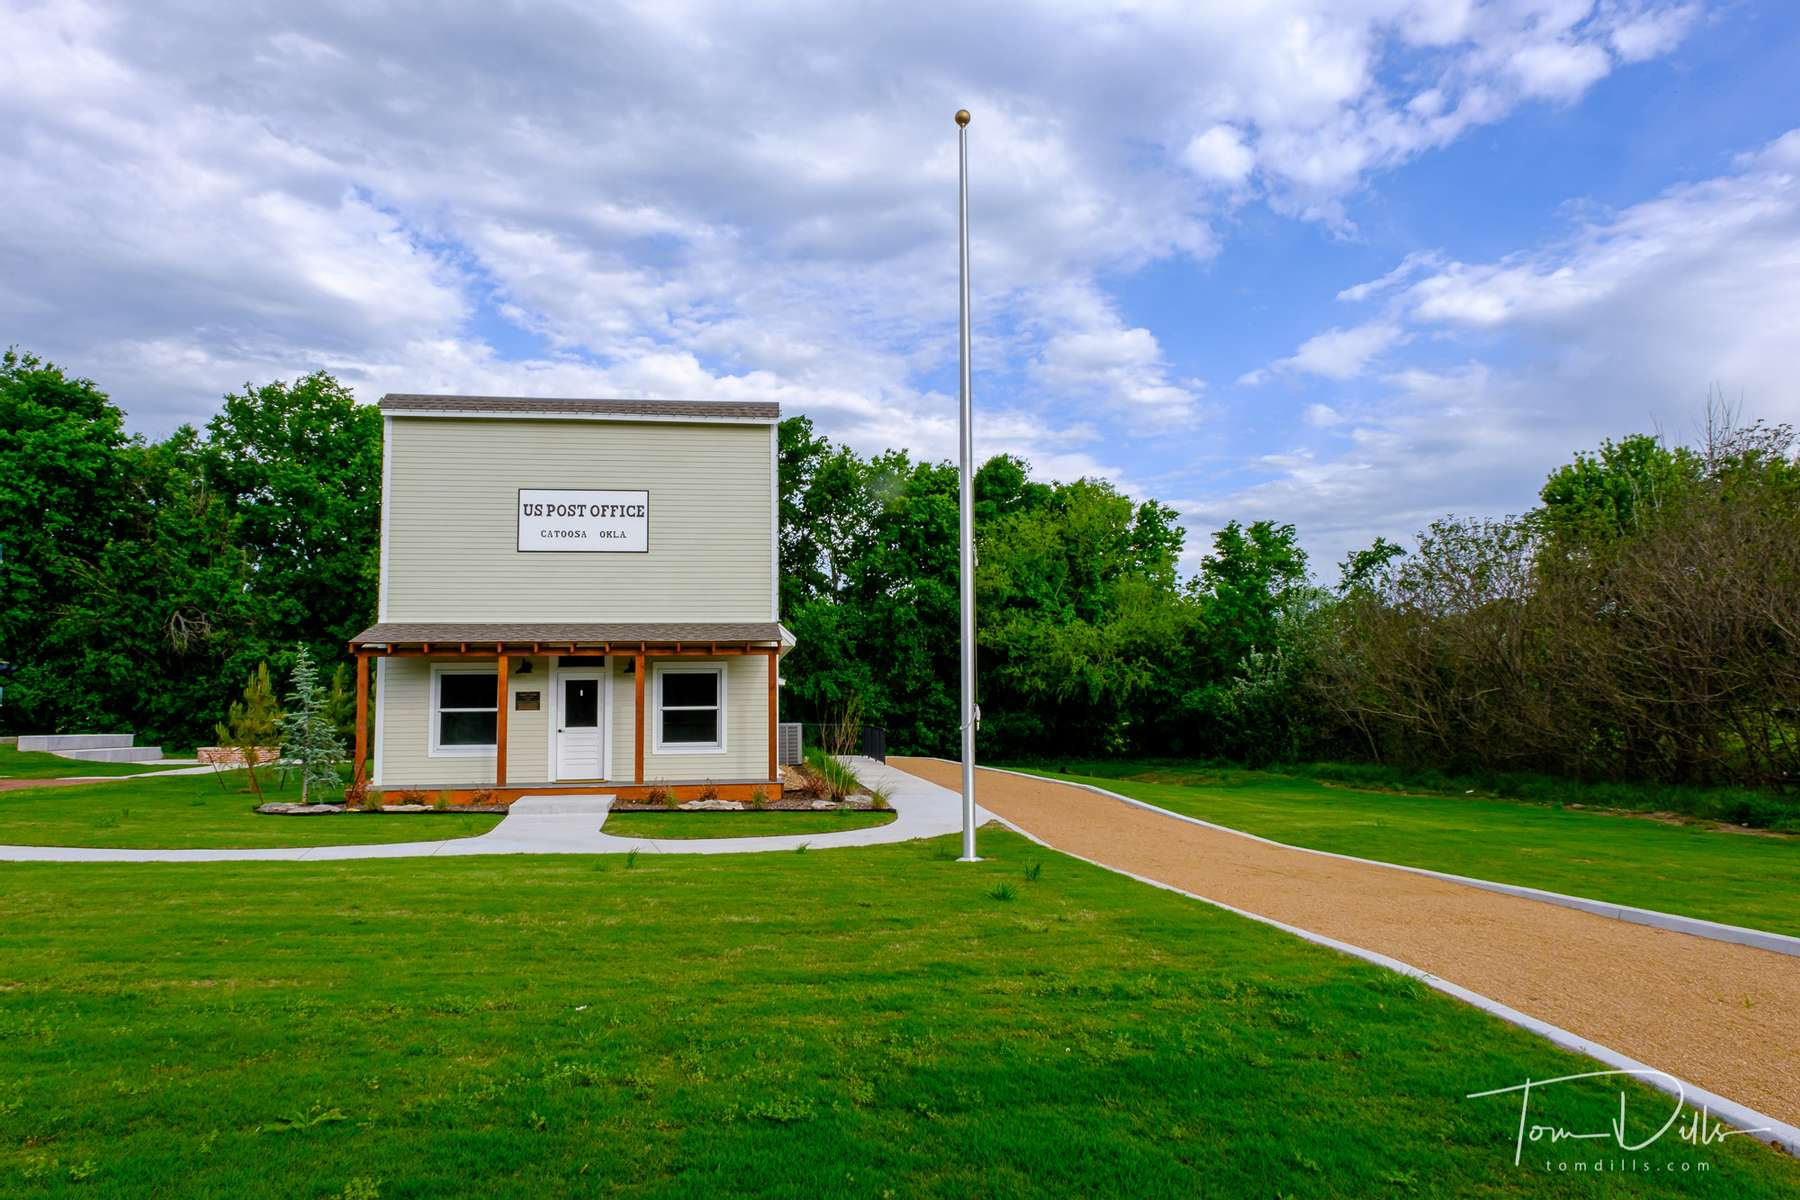 Train station and post office in Catoosa, Oklahoma